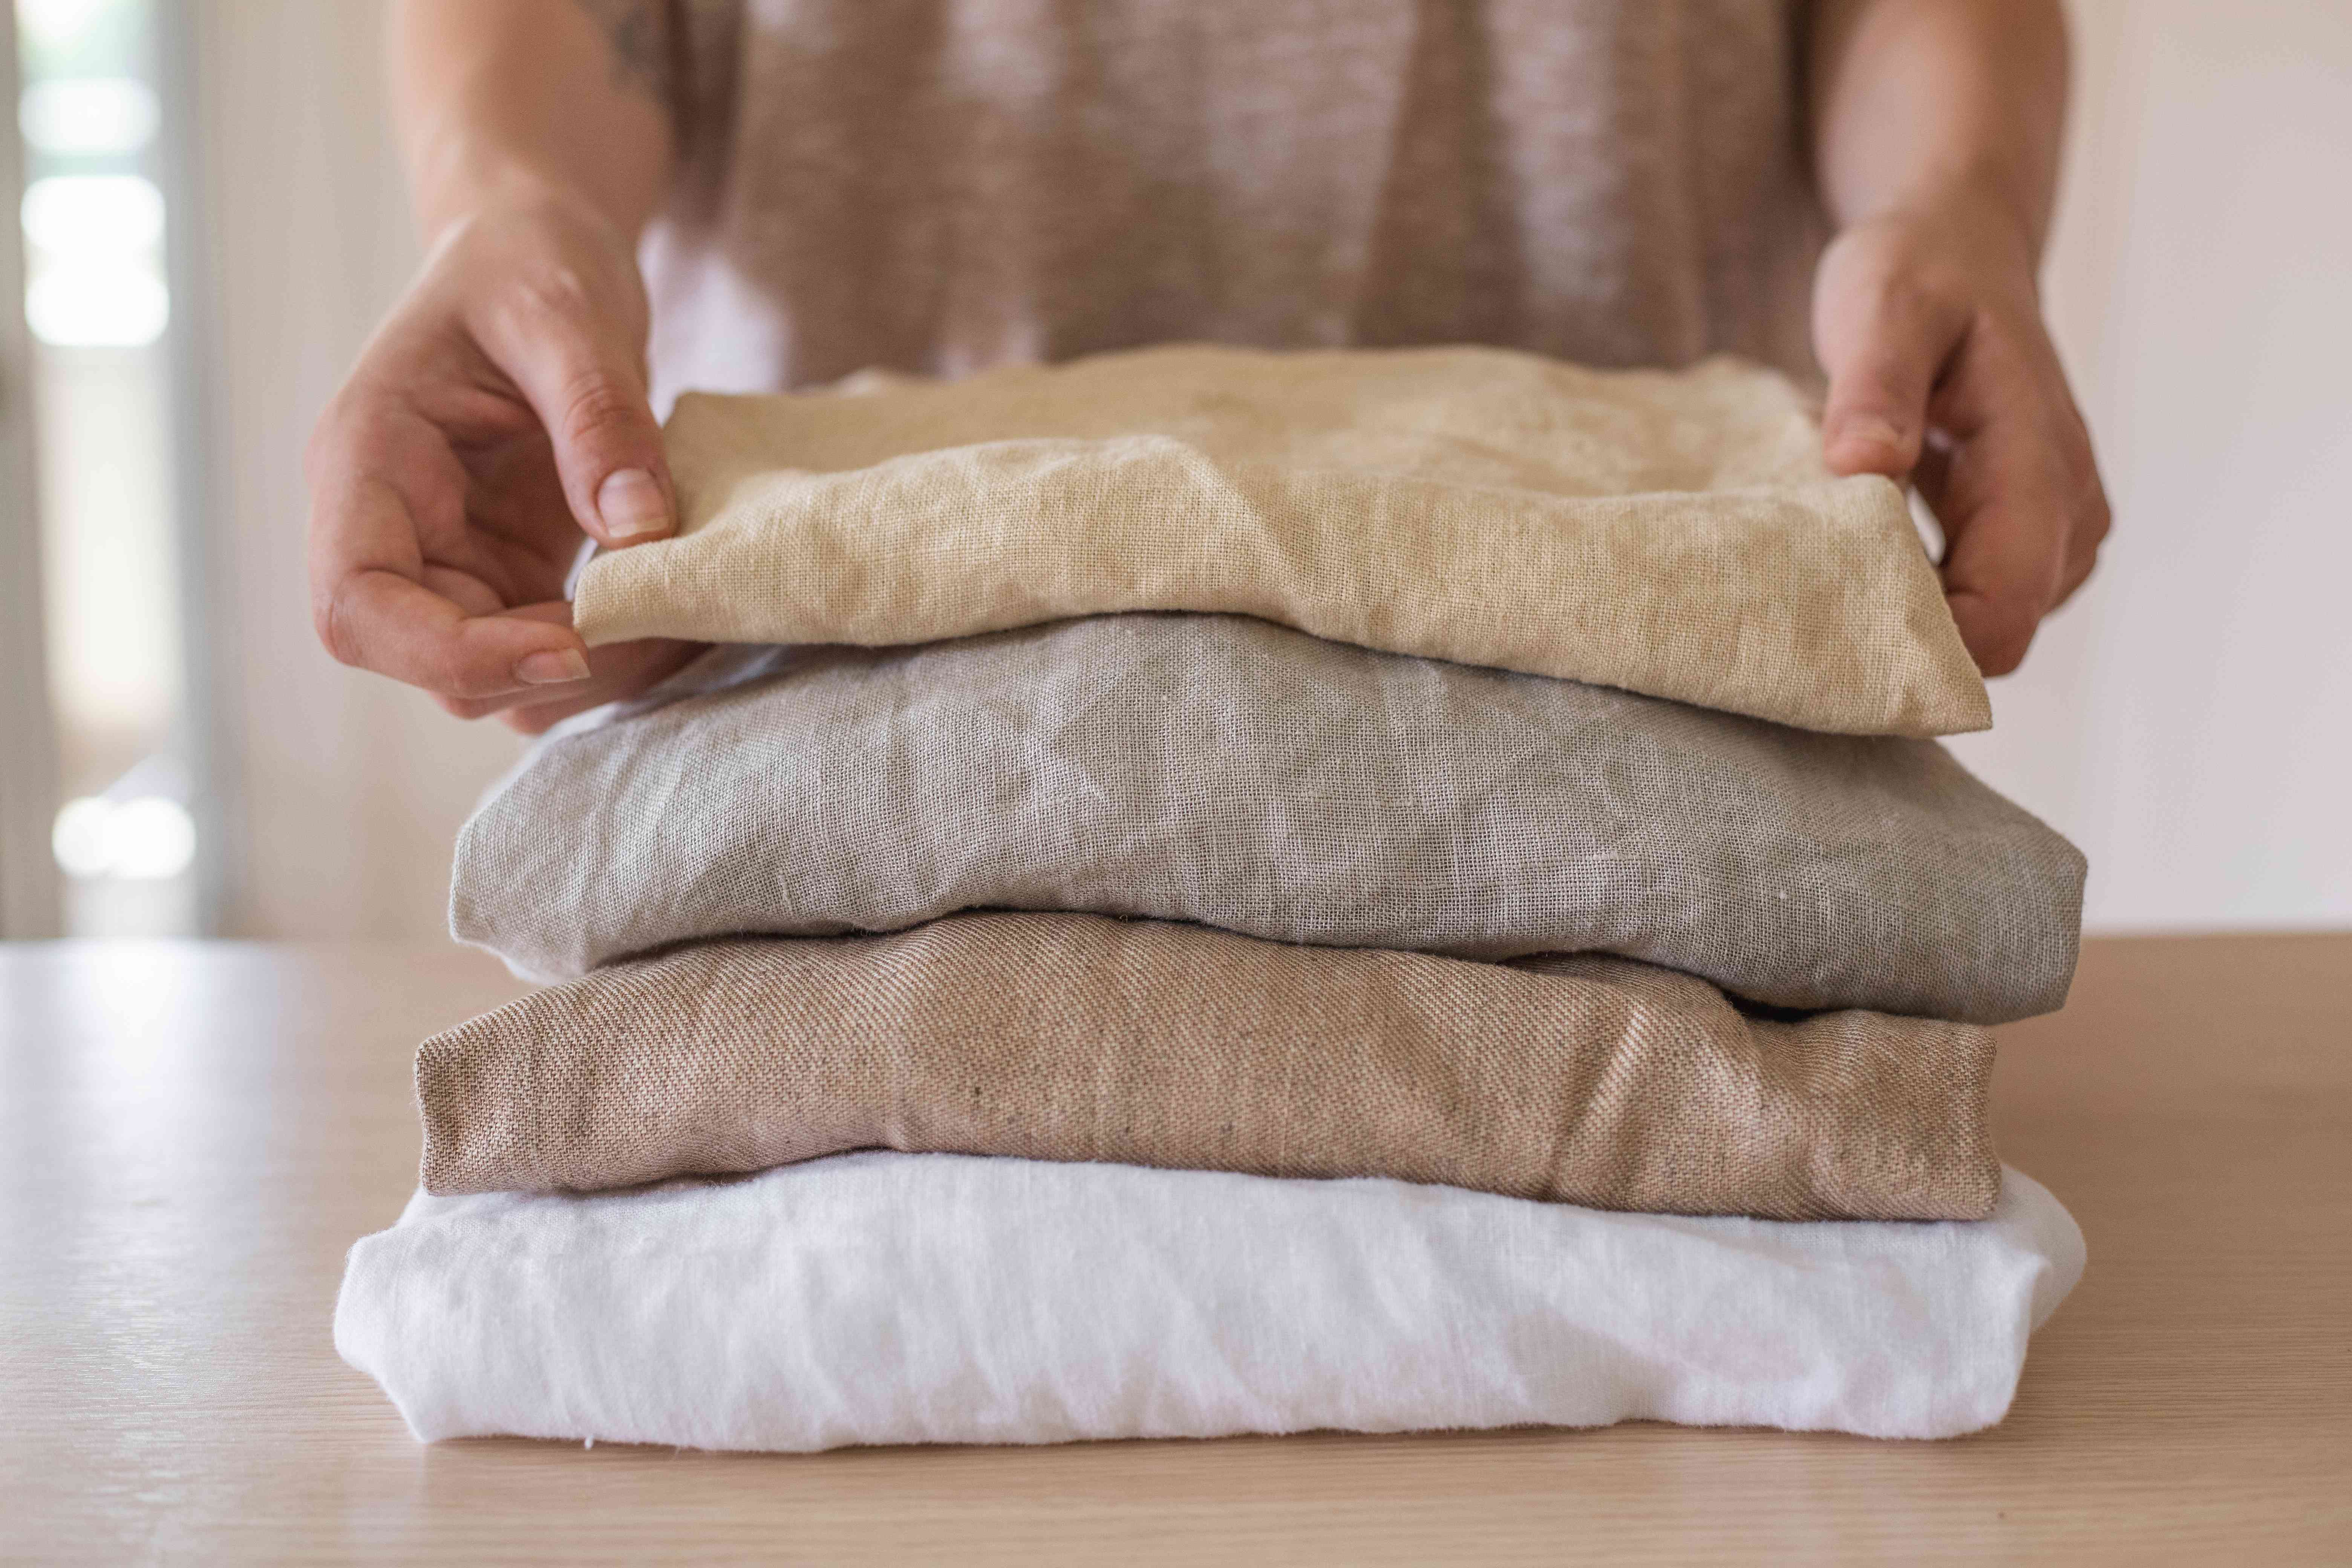 person folds and piles pieces of wrinkled linen clothing in various earth tones